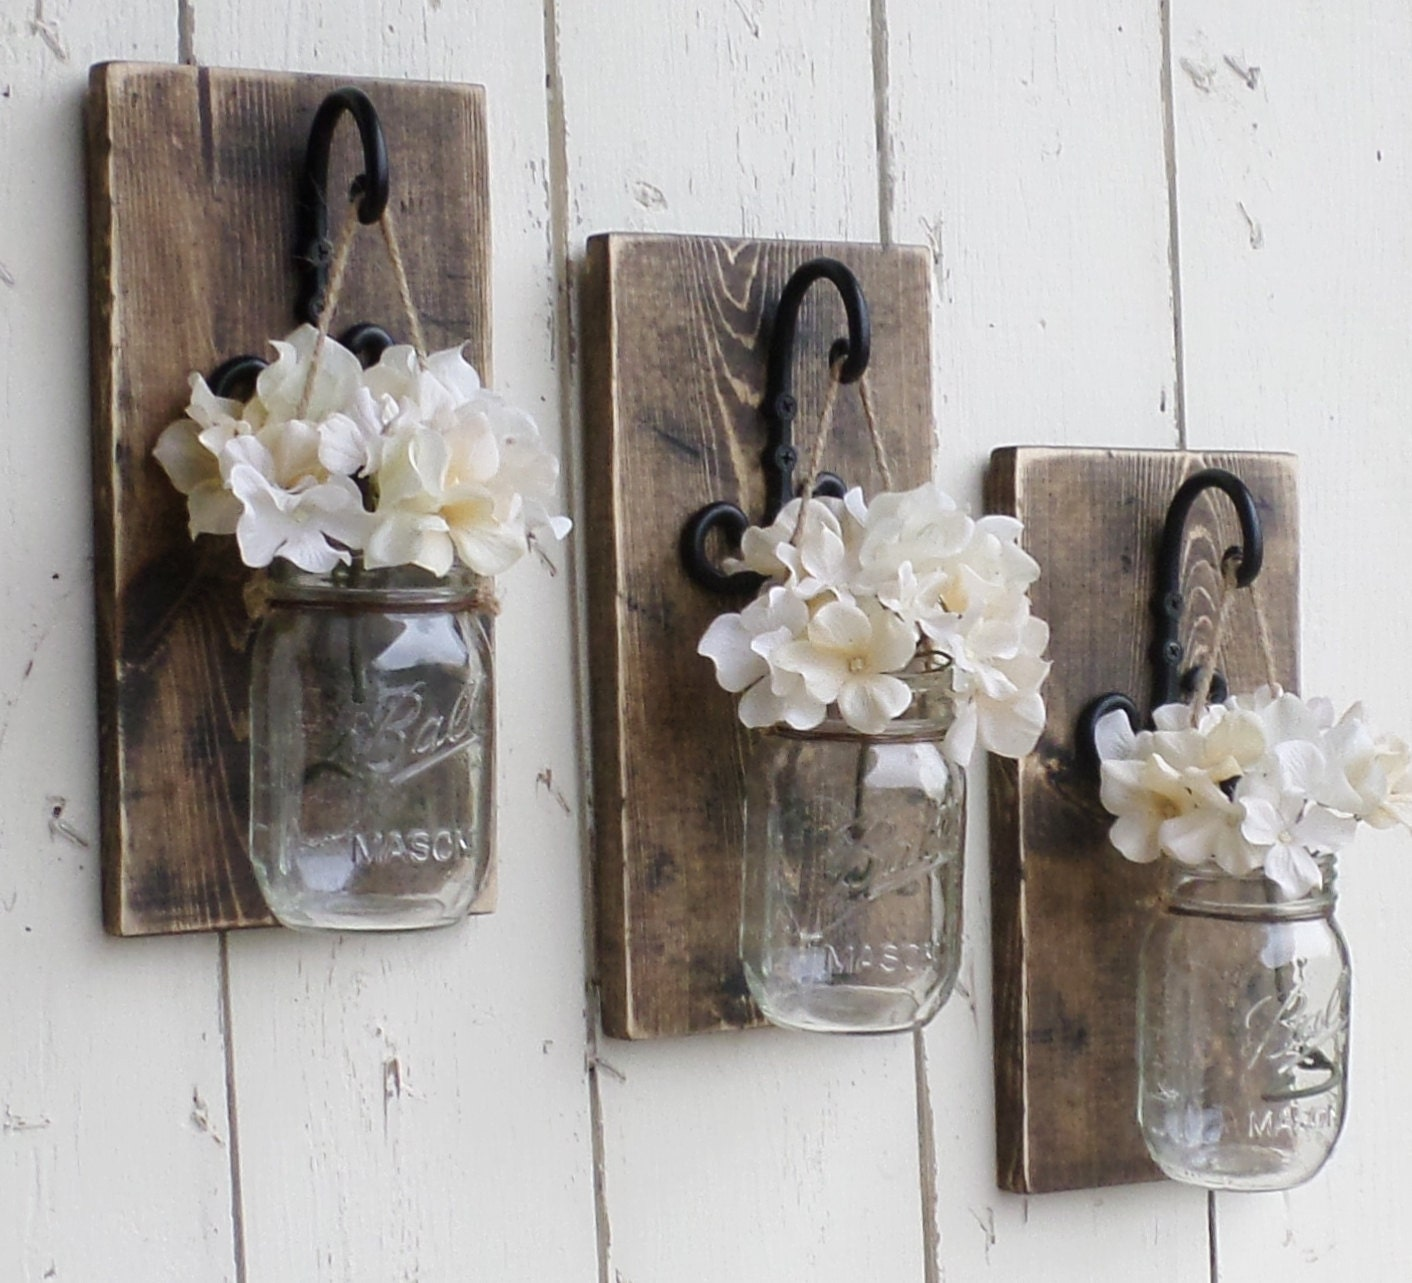 New rustic farmhouse wood wall decor 3 by cottagehomedecor - Country wall decor ideas ...